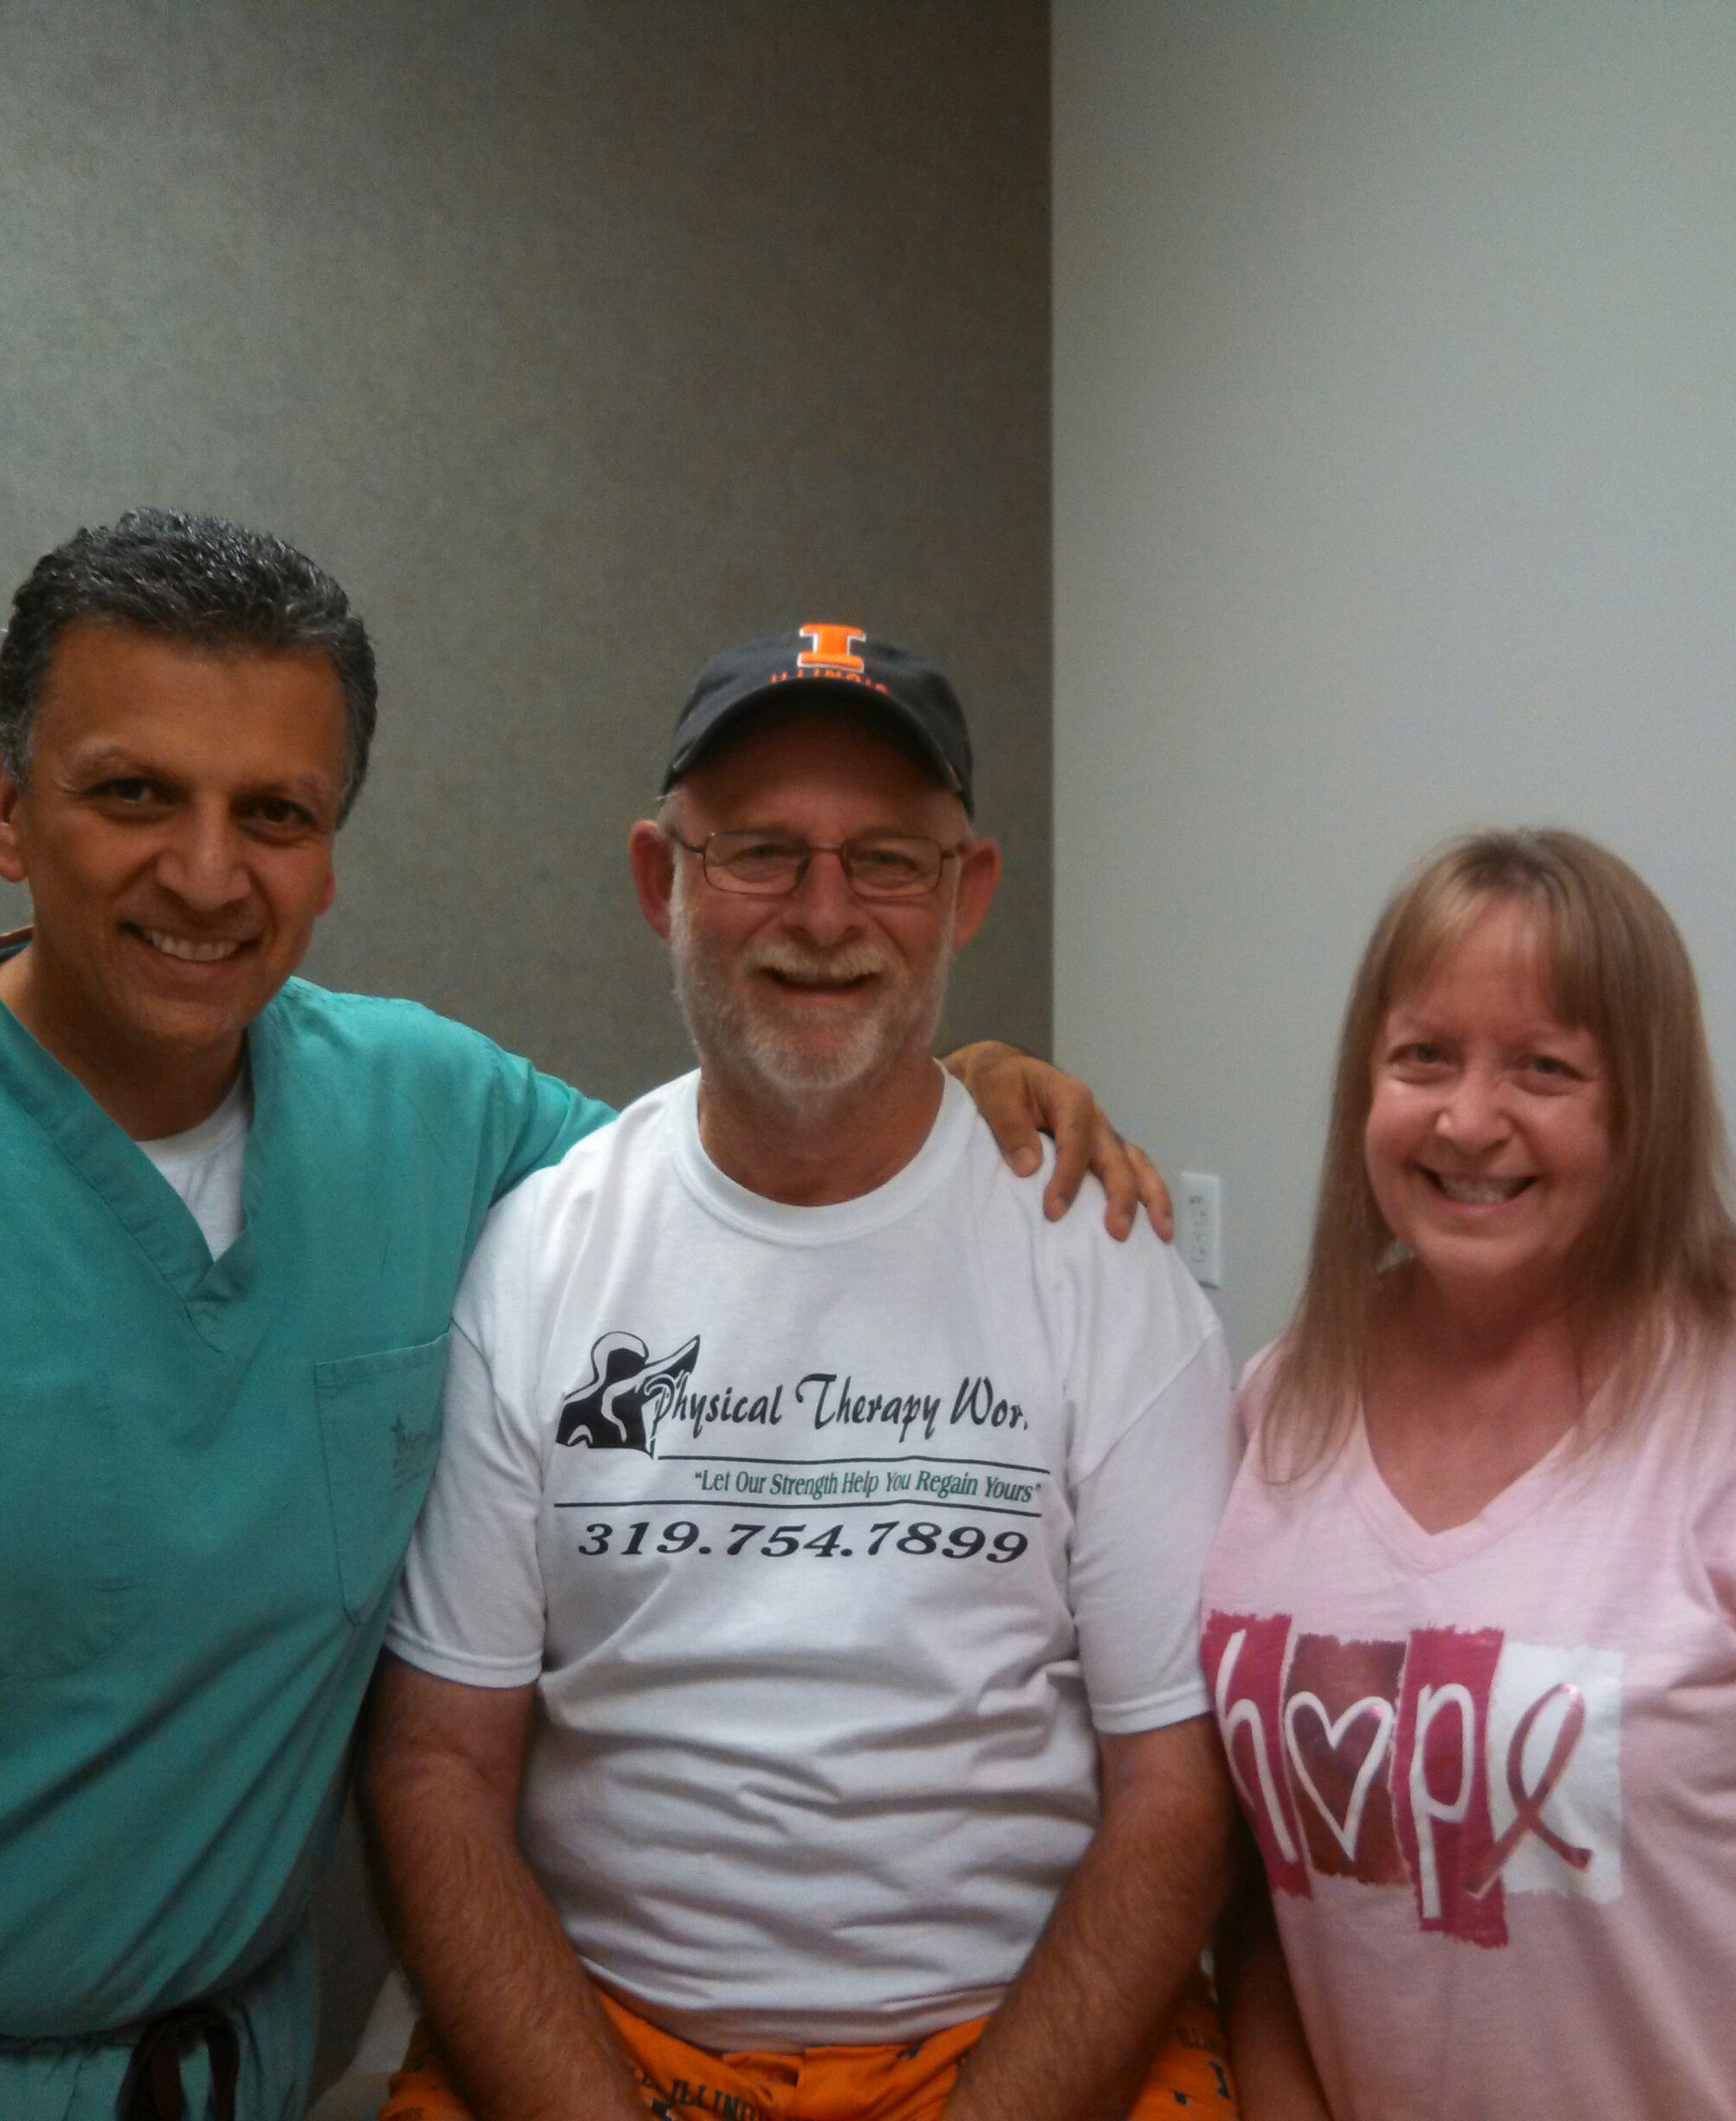 jim-hetrick-knee-patient-bilateral-total-knee-replacement